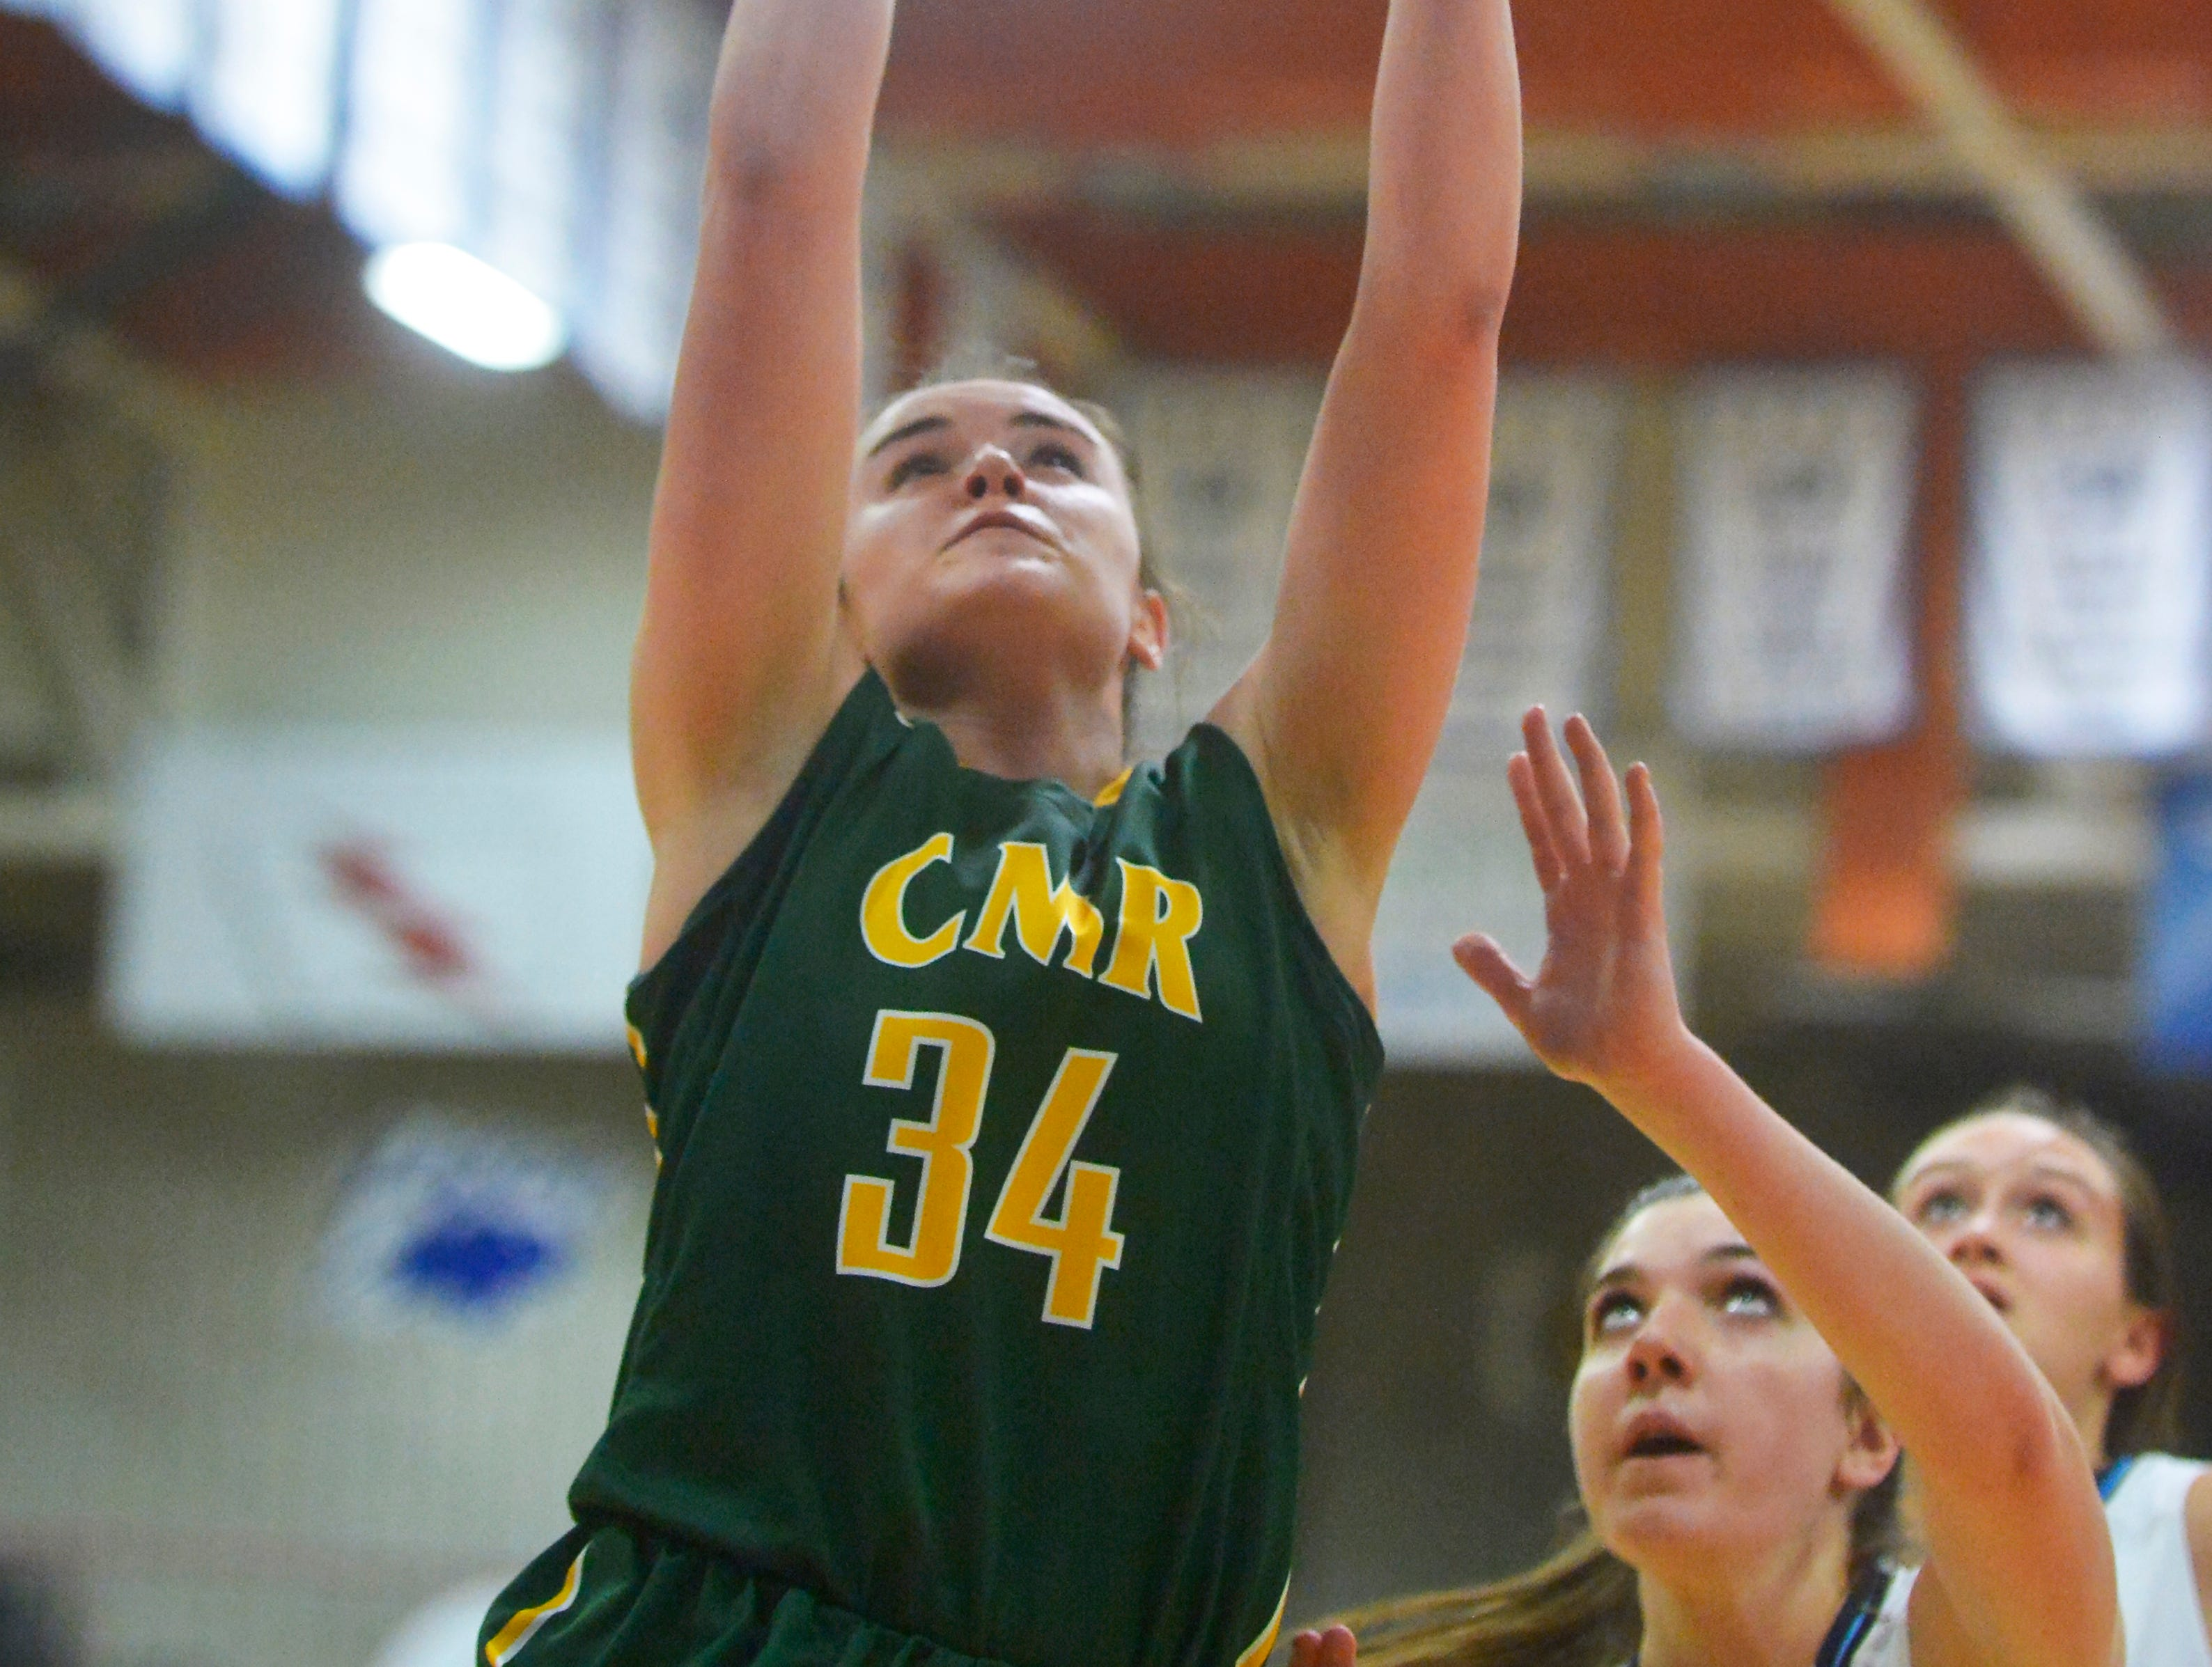 CMR's Kiely Gunderson attempts a layup during the crosstown basketball game, Tuesday night in the Swarthout Fieldhouse.